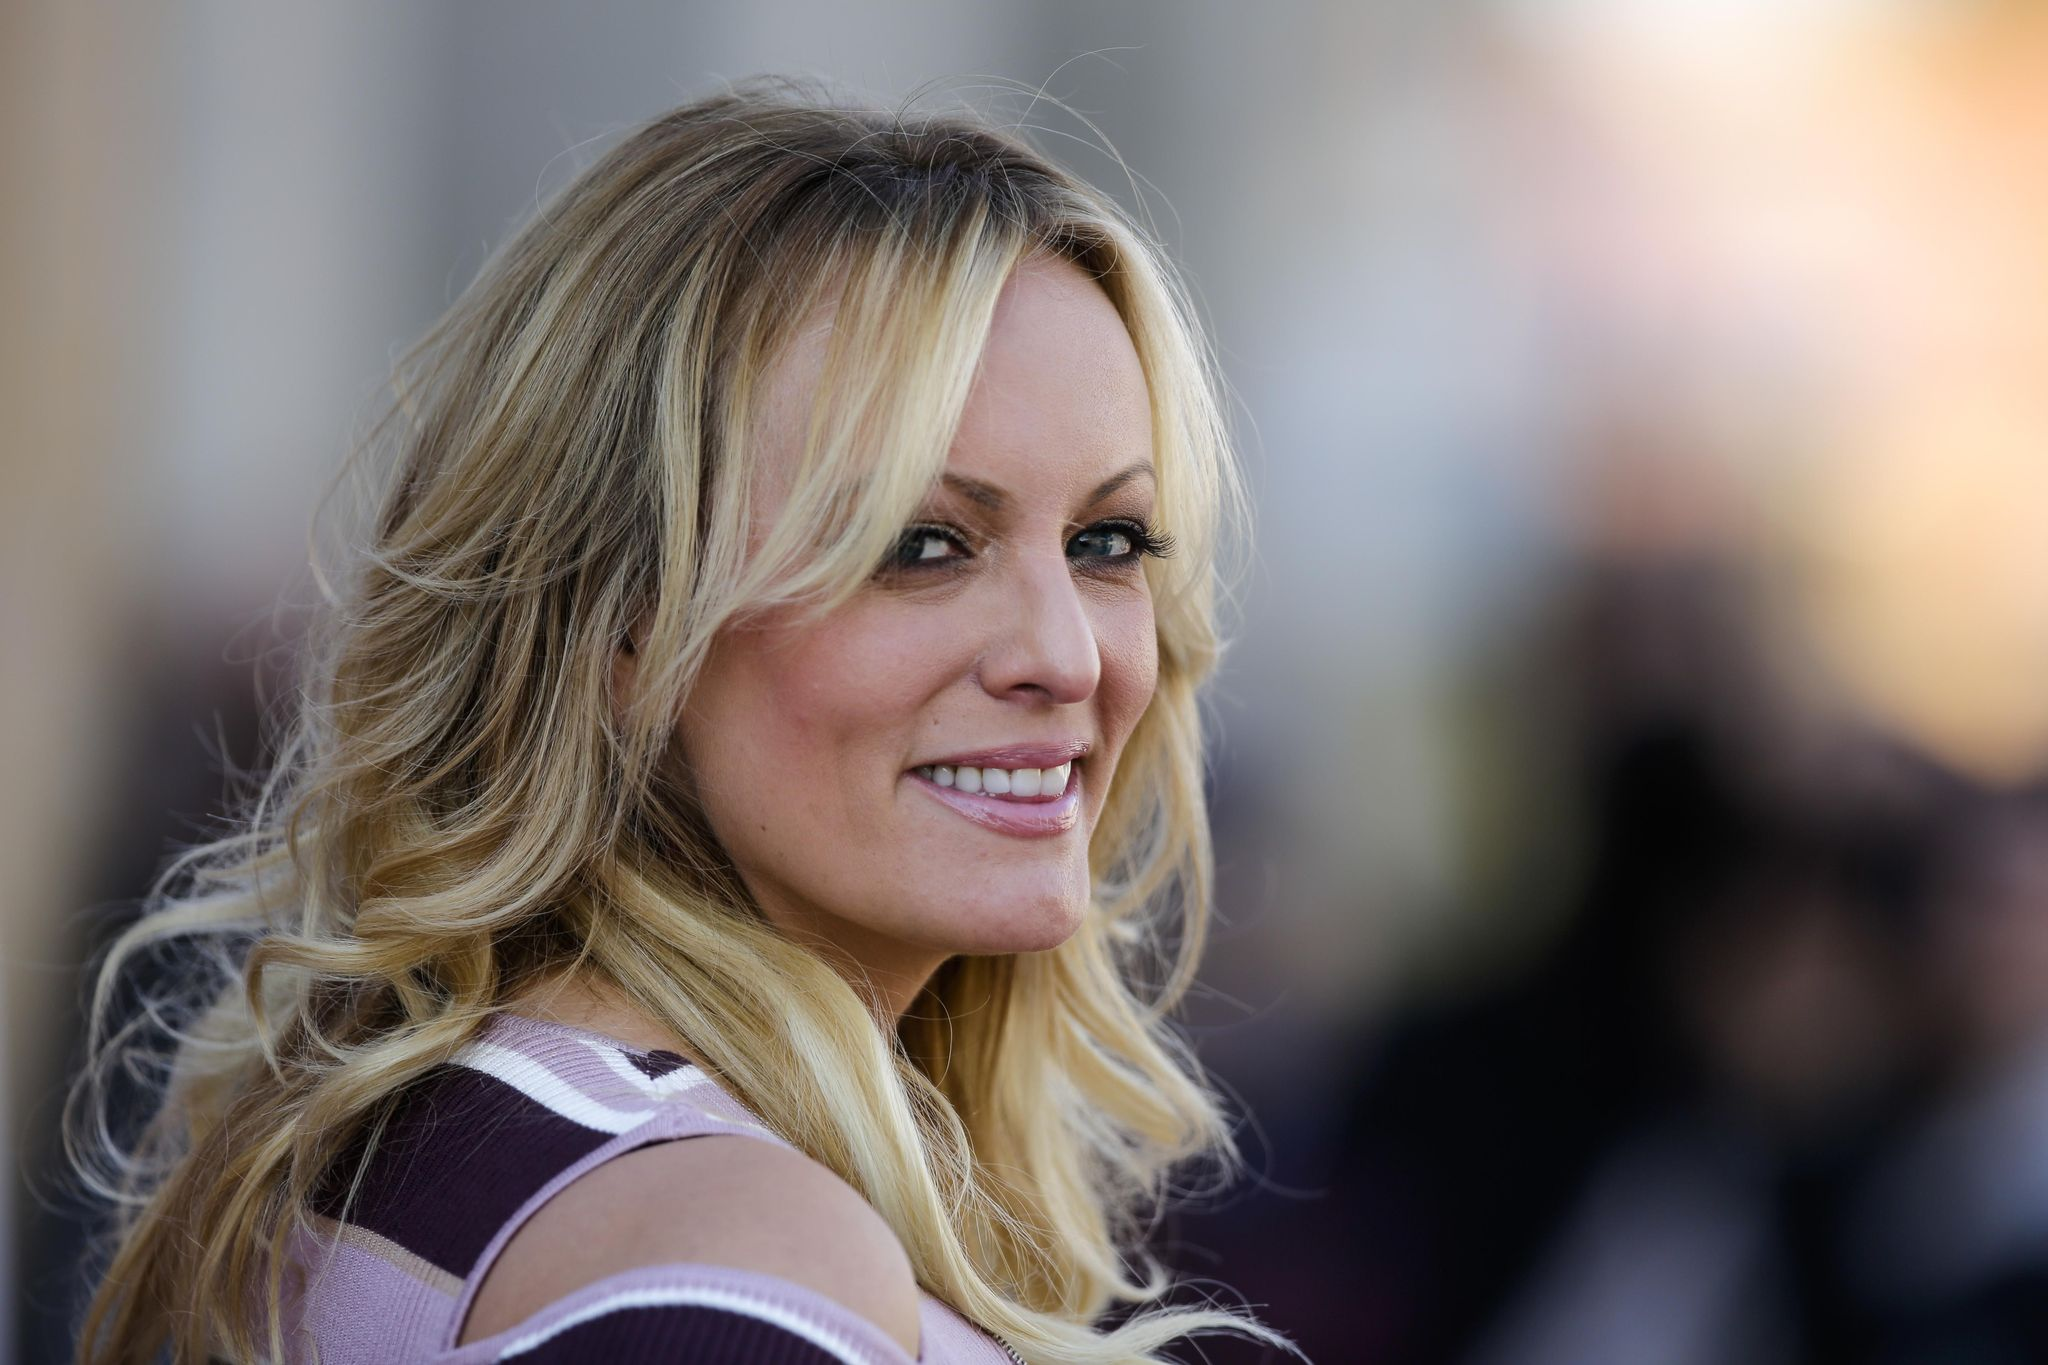 Feds have evidence of Trump's role in hush-money payments to Stormy Daniels, Karen McDougal: Report